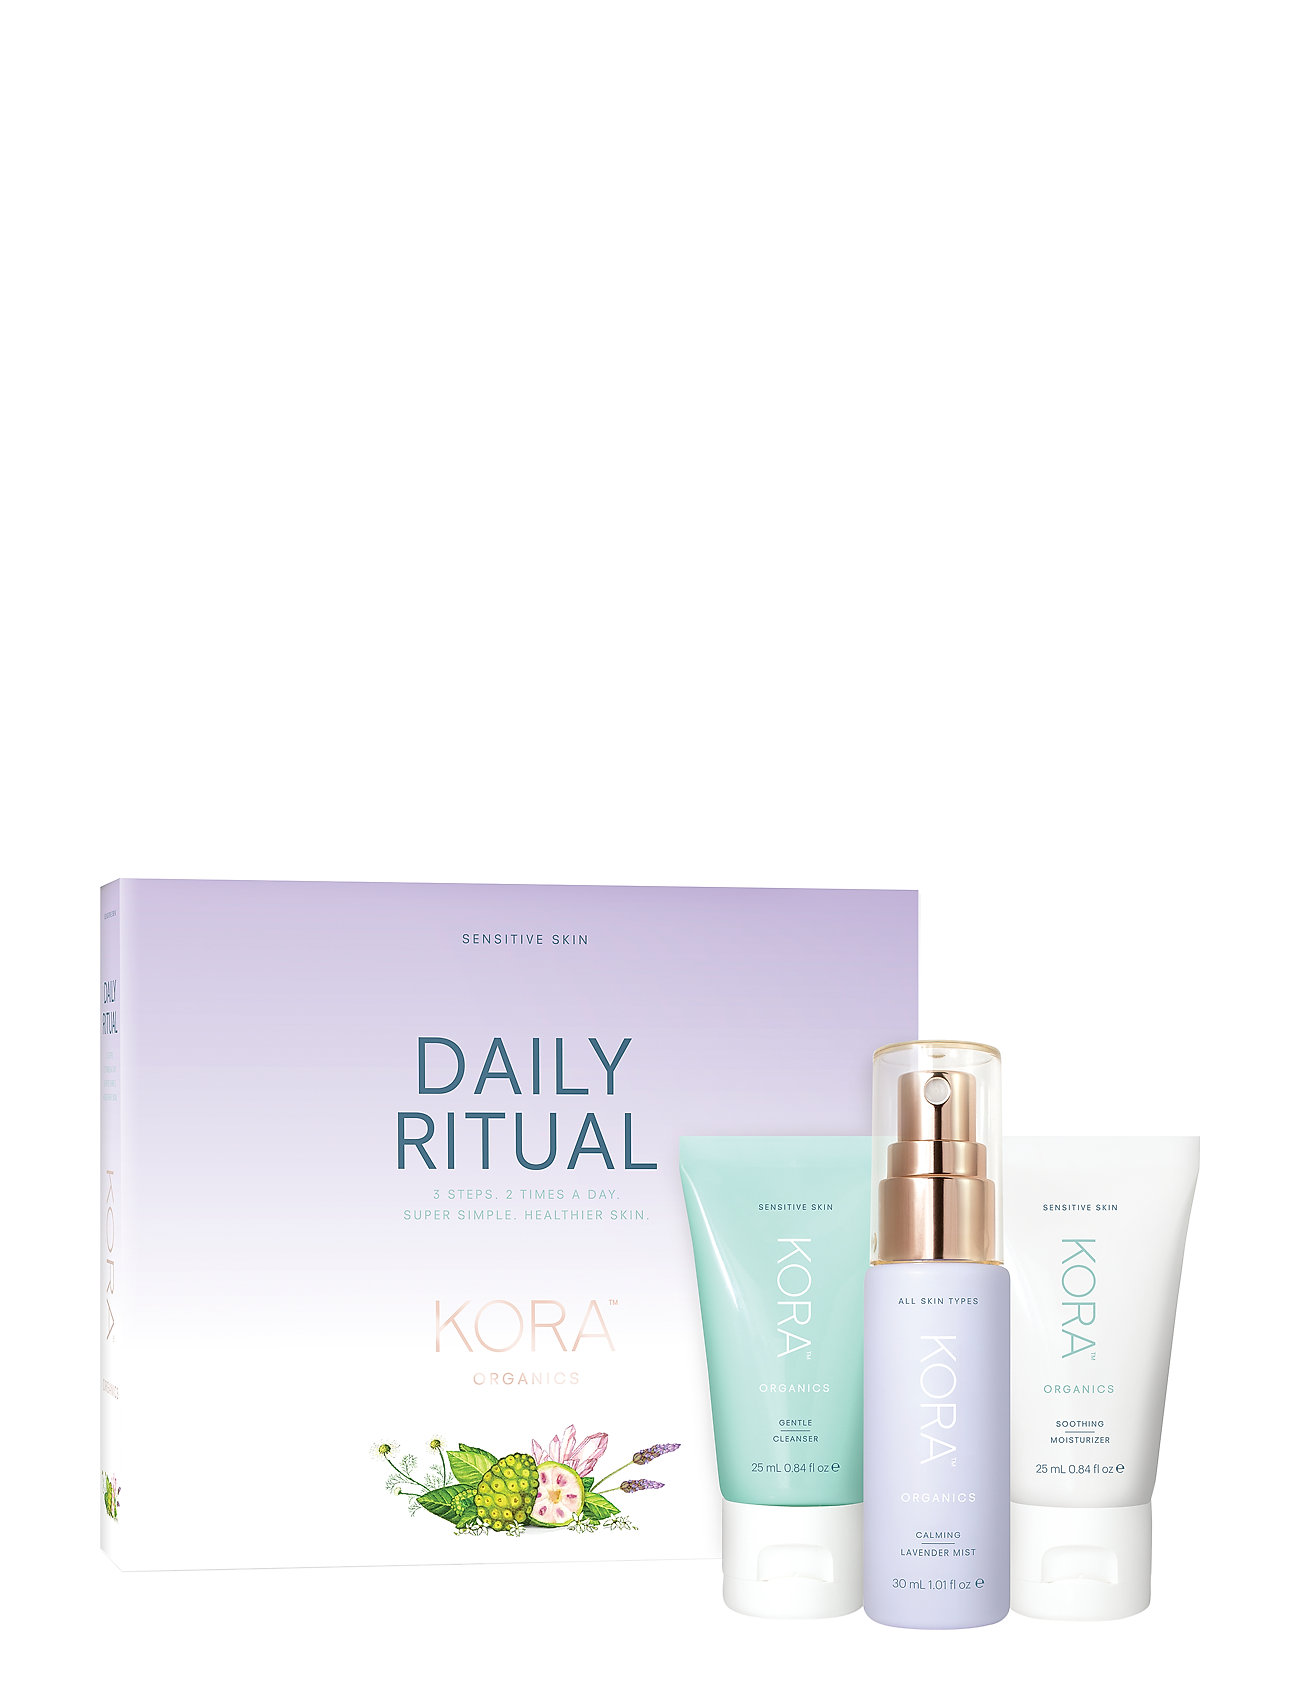 Kora Organics Daily Ritual Kit - Sensitive - CLEAR/TRANSPARANT